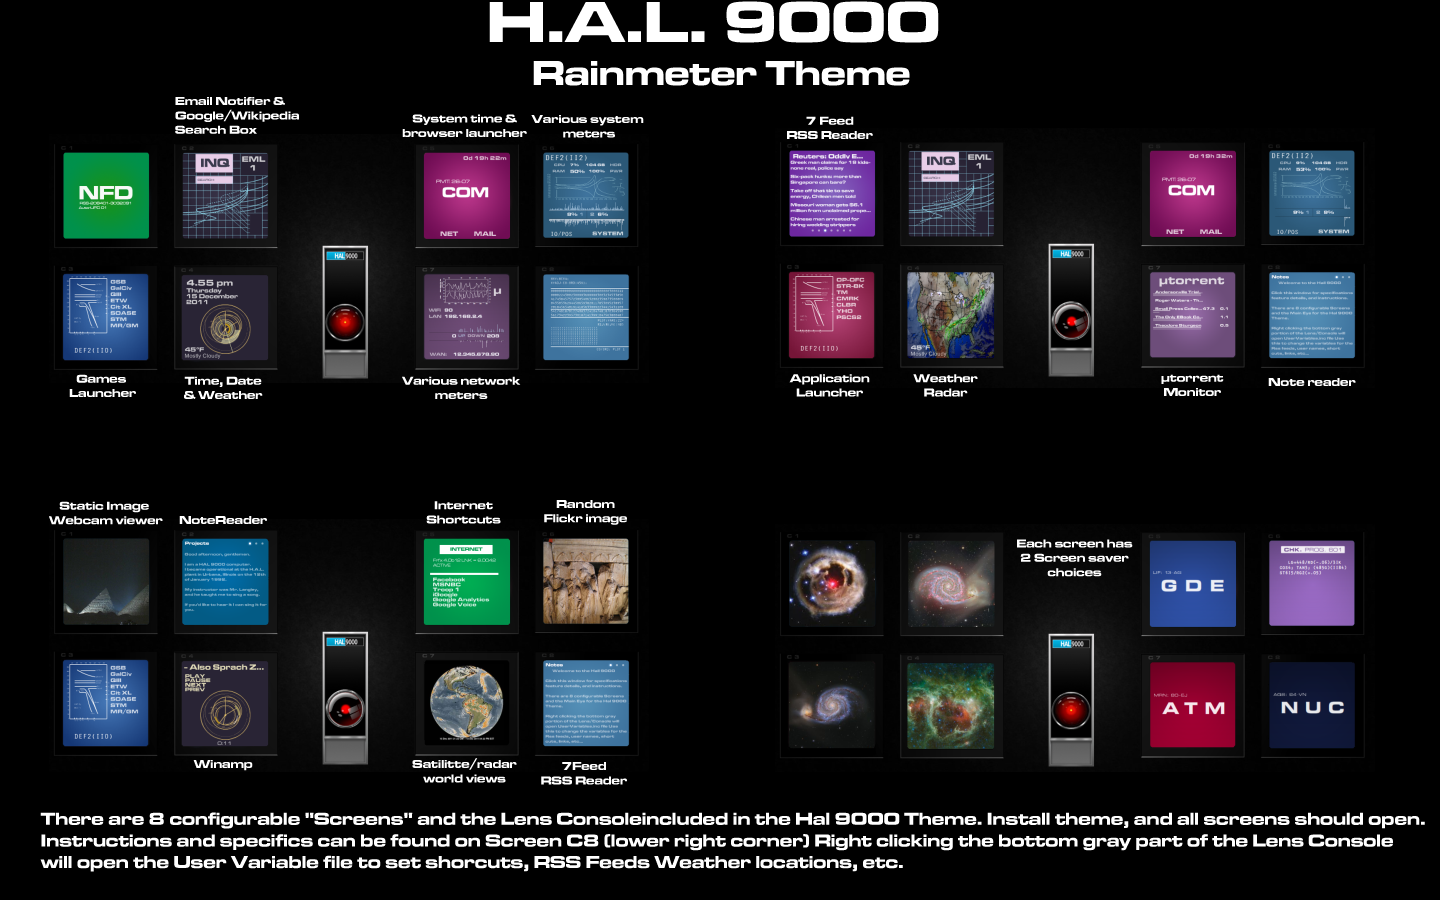 Hal 9000 Rainmeter Theme By Ts Looney On Deviantart